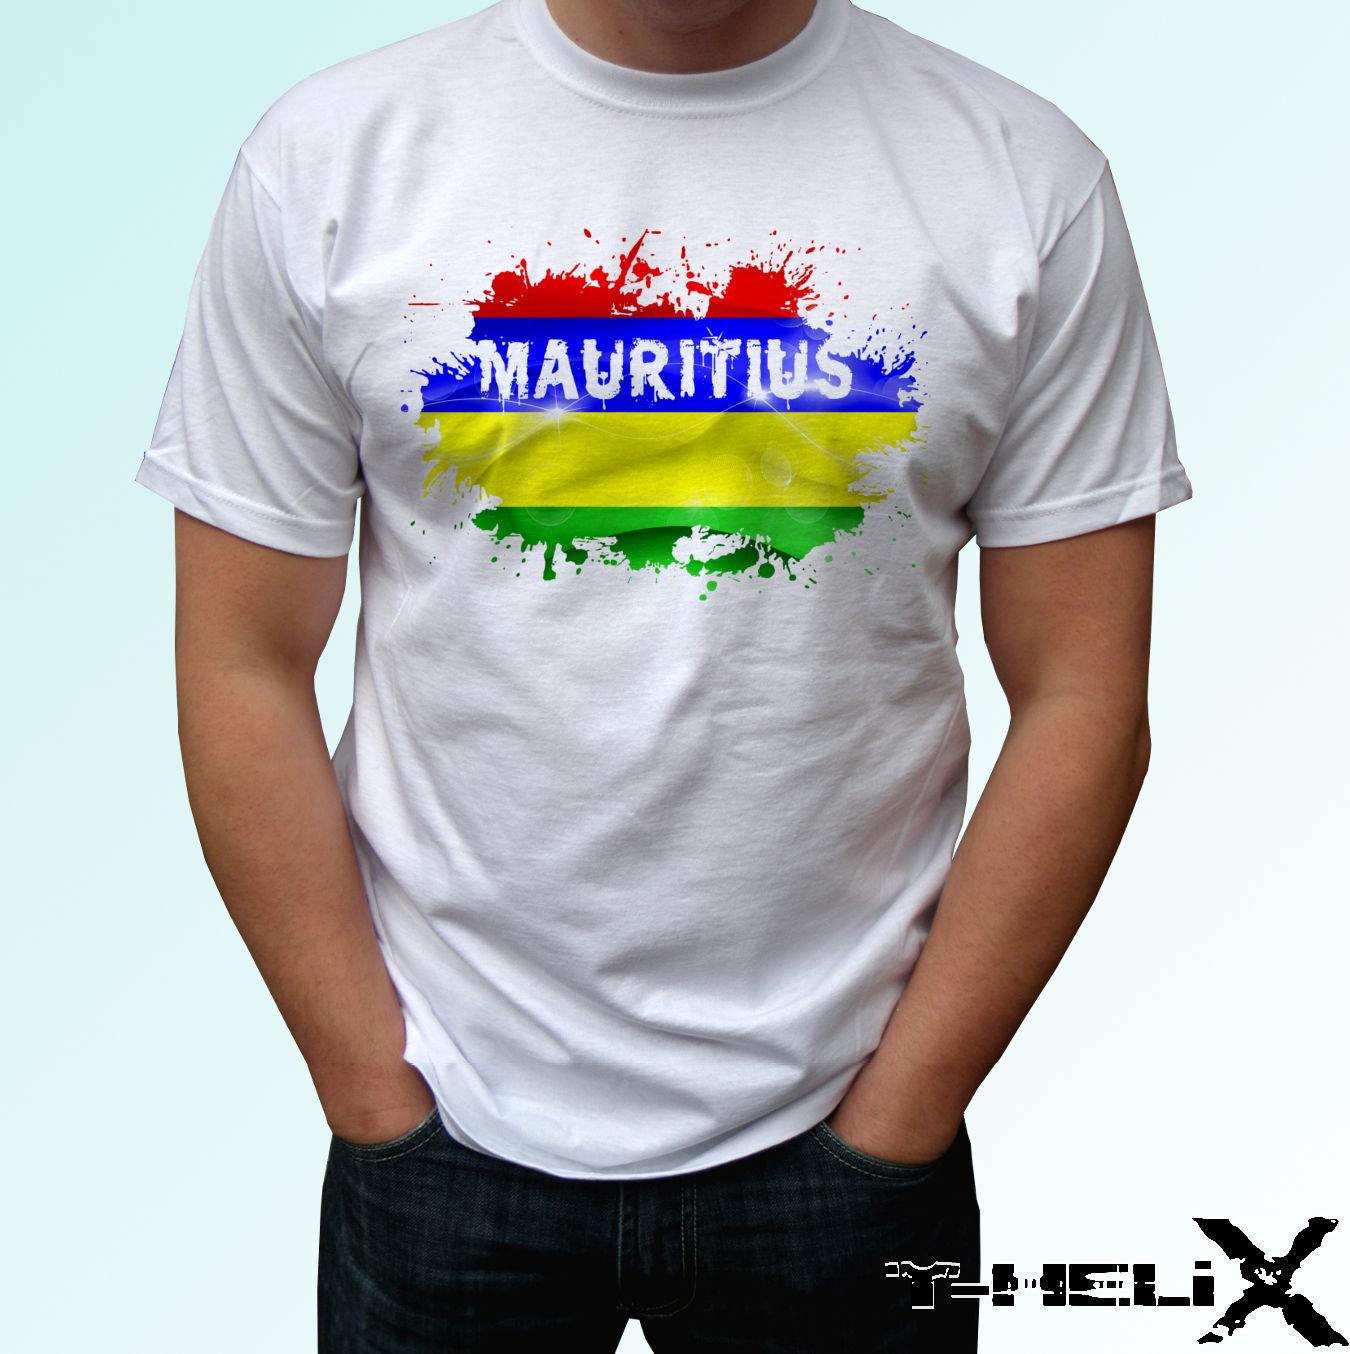 ac8050f136e Mauritius Flag White T Shirt Top Country Design Mens Womens Kids Baby Sizes  Cool Casual Pride T Shirt Men Unisex Buy Cool Shirts Online Funny T Shirt  Sites ...